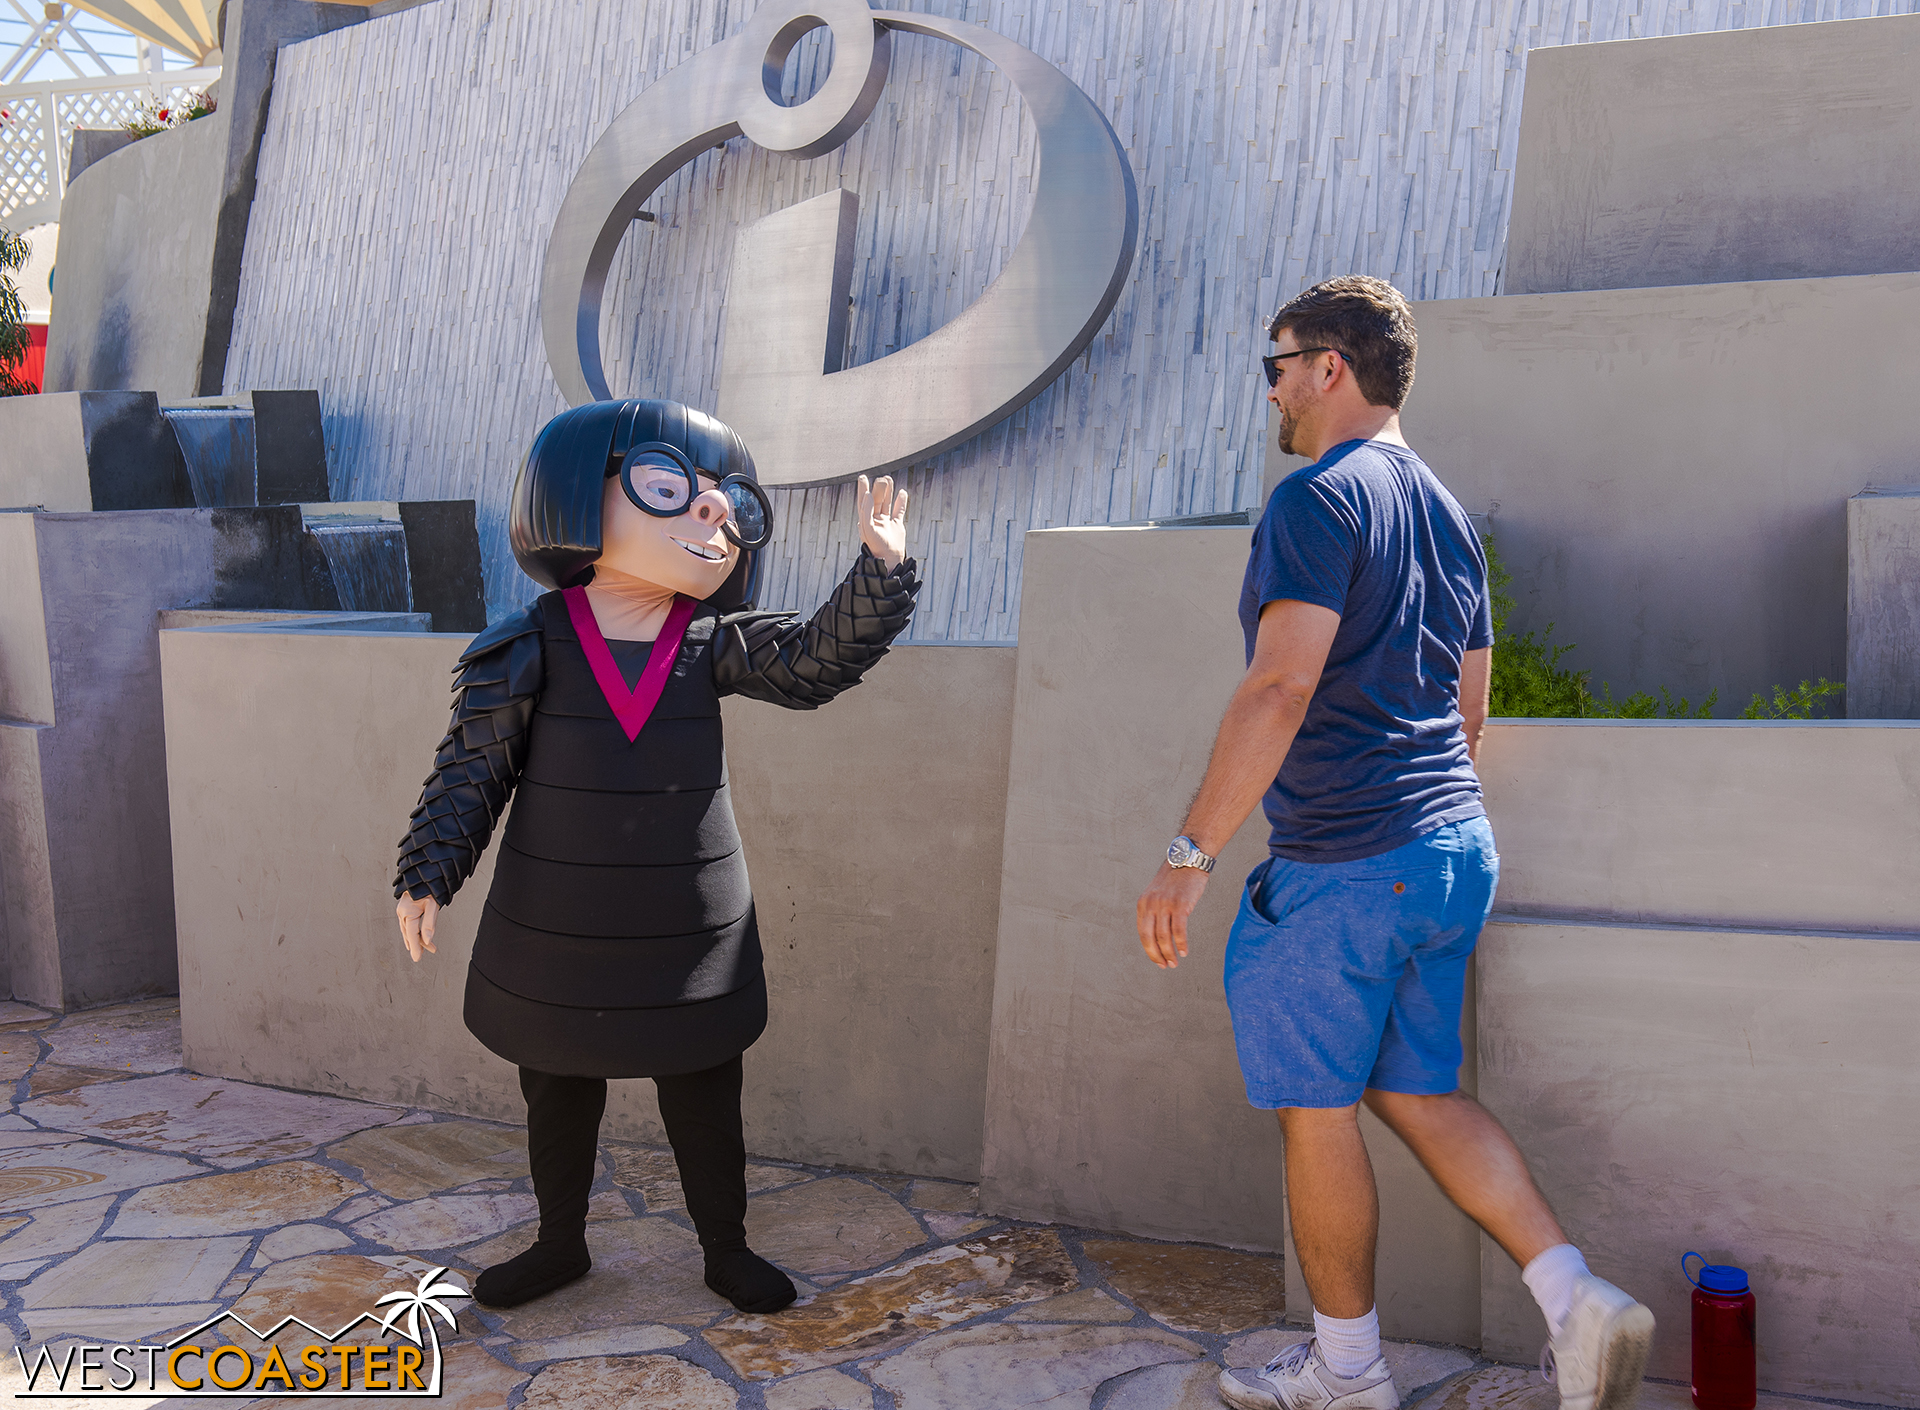 The fountain wall across the Incredicoaster entrance now has a great meet-and-greet with Edna Mode.